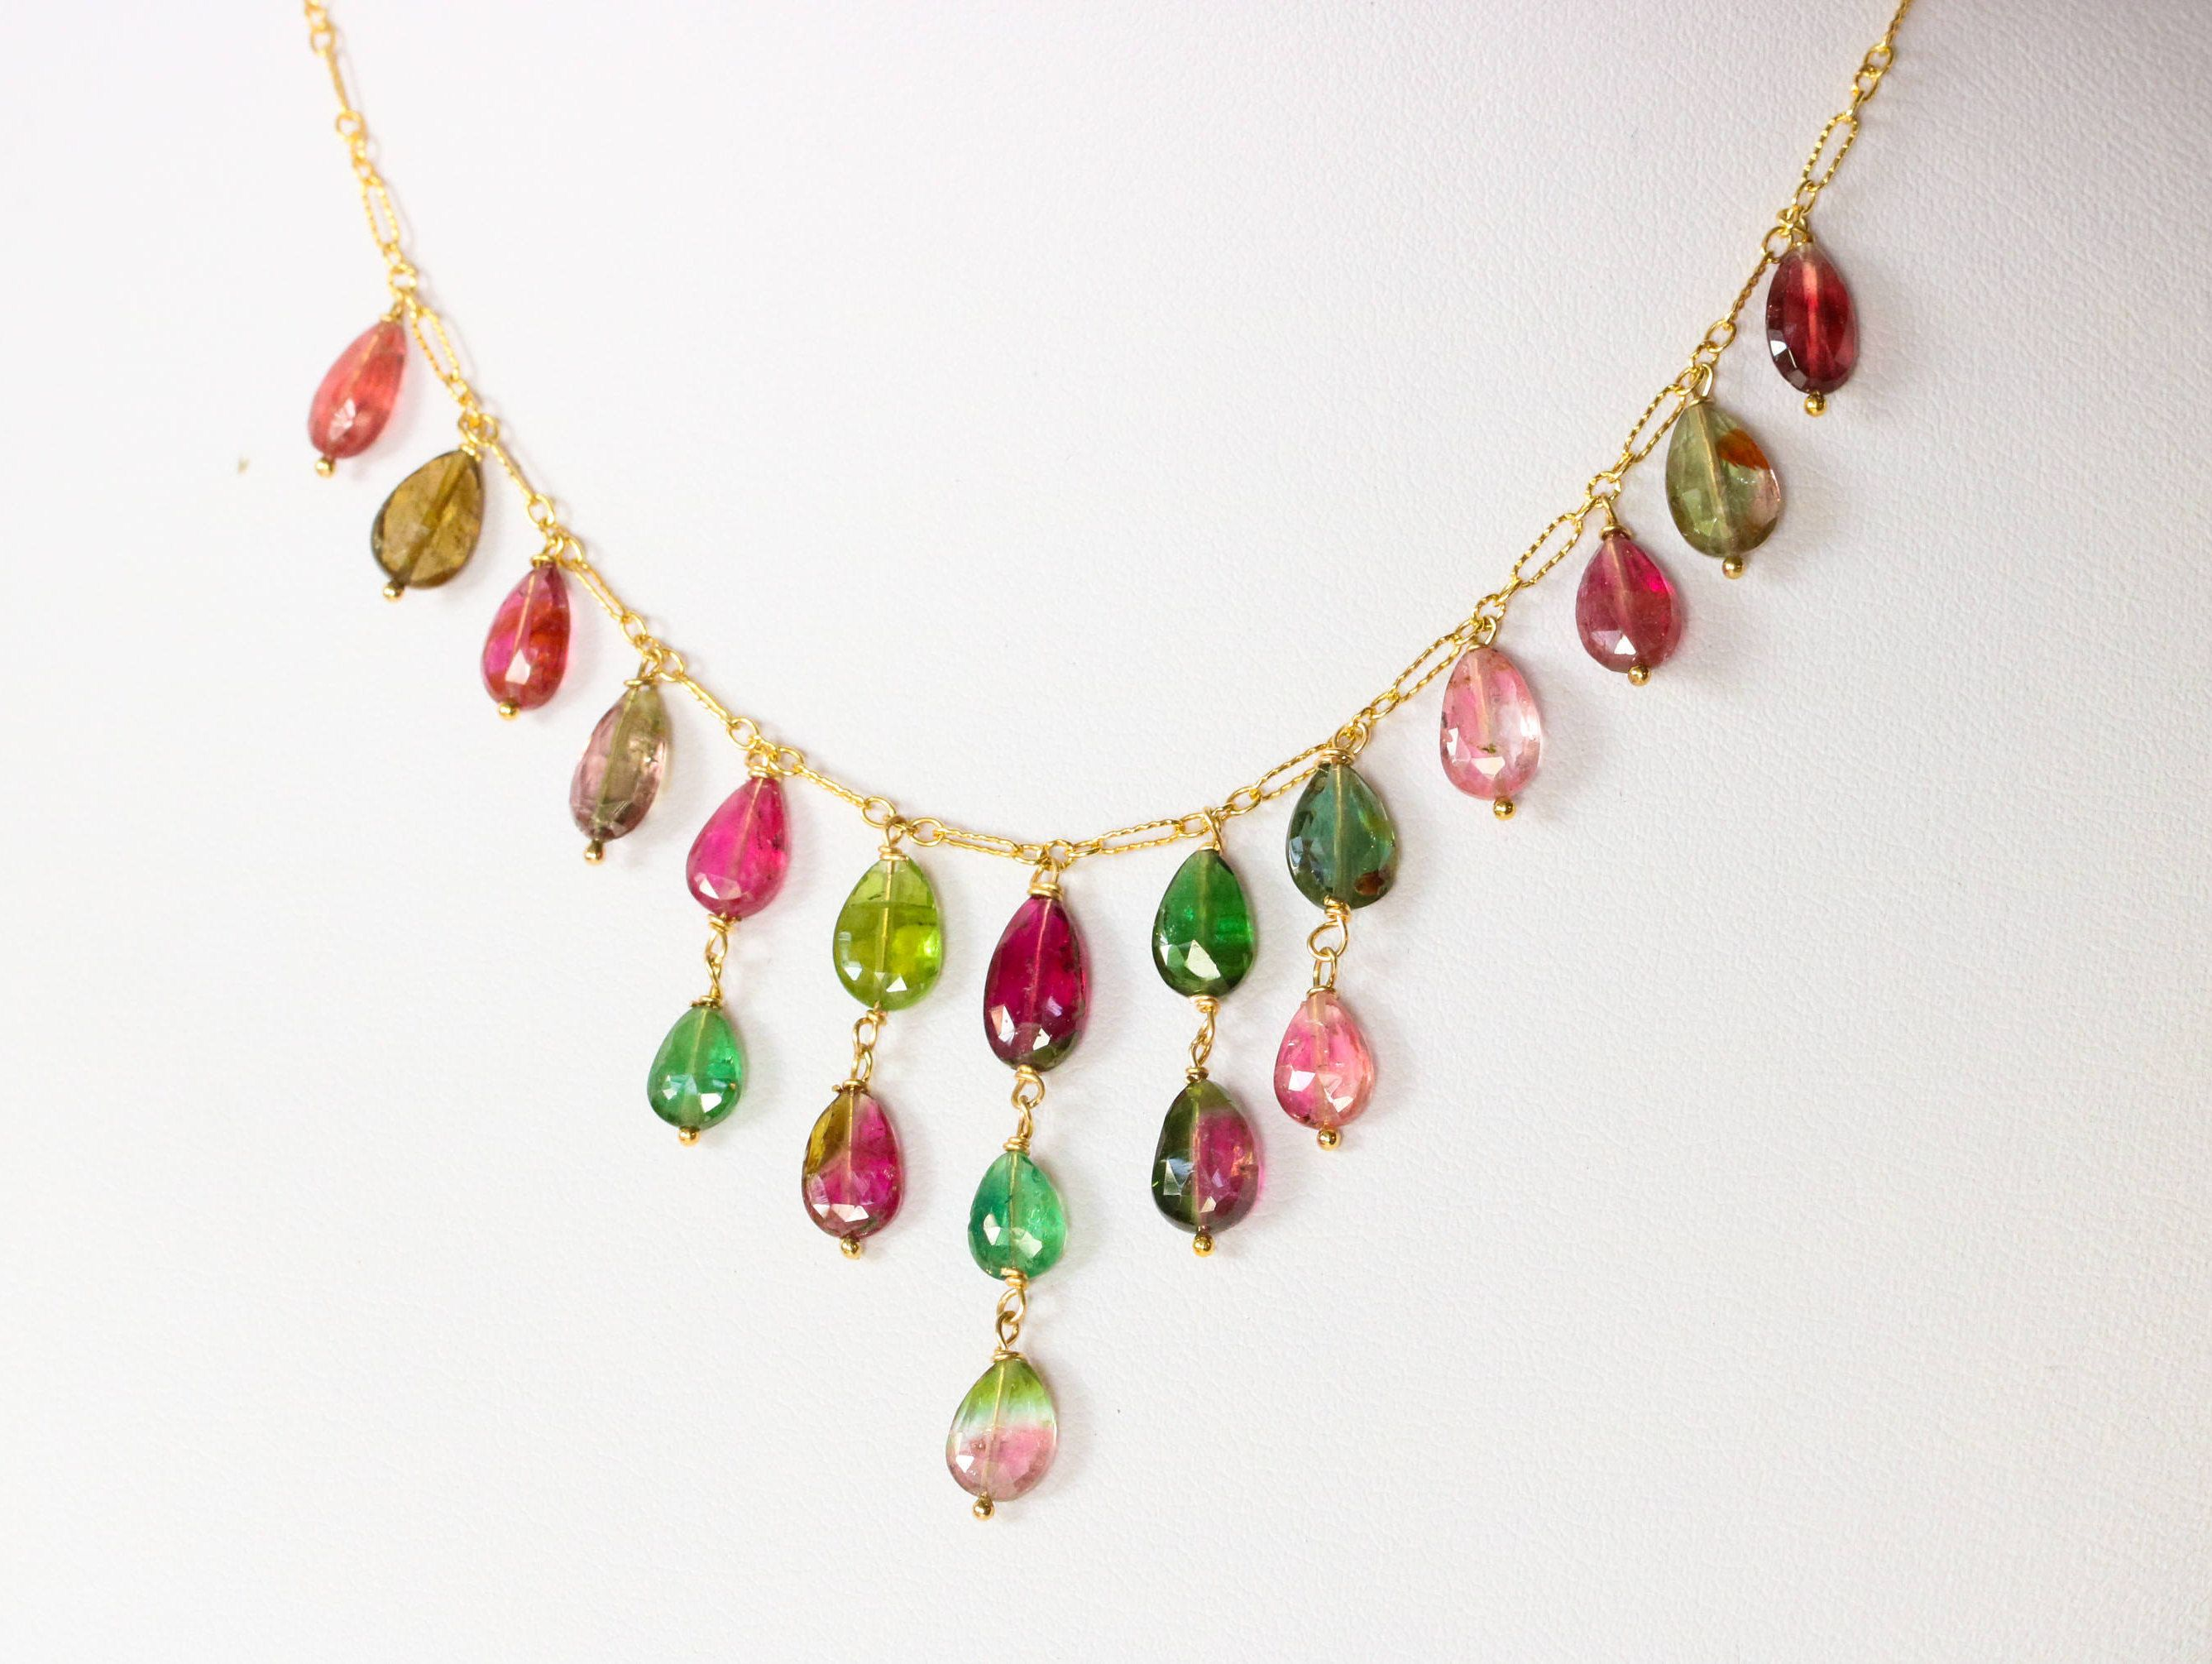 watermelon tourmaline gemstone pendant pink statement luxury bib necklace pin